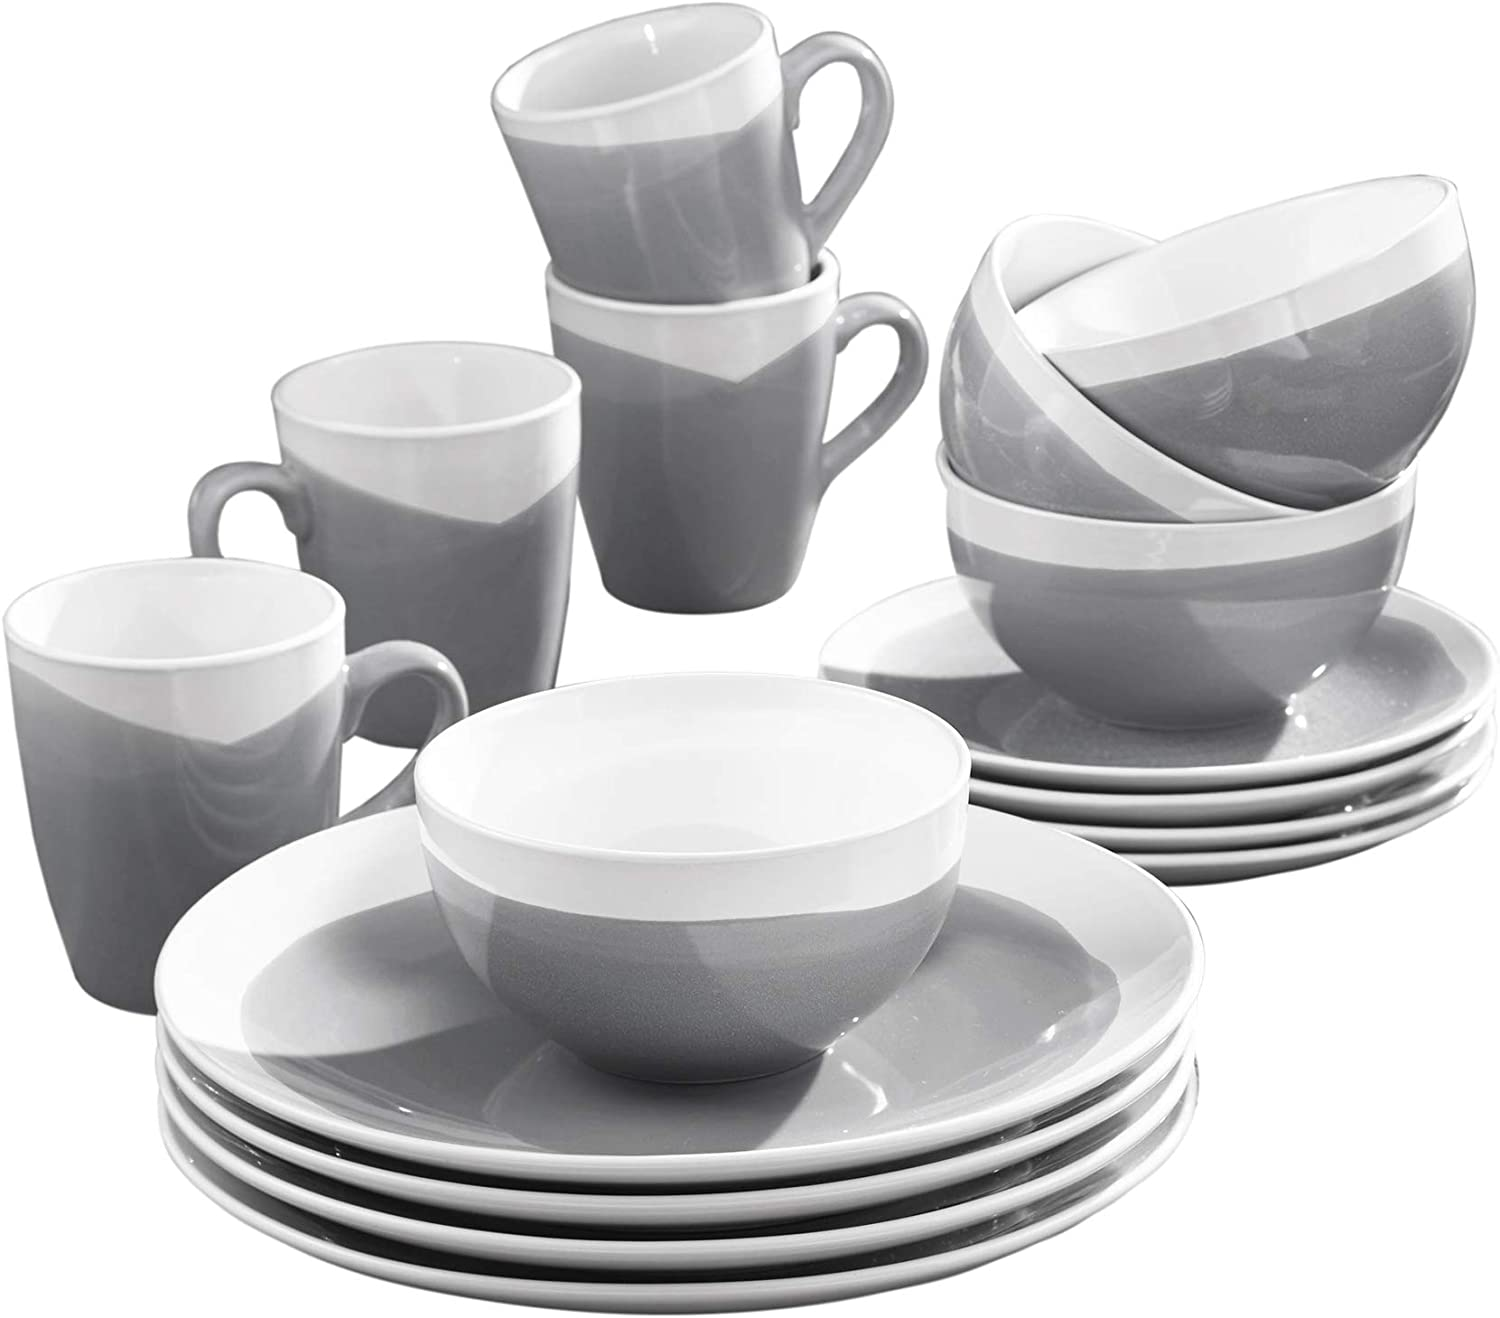 """American Atelier 7265-16-RB Oasis 16 Piece Round Dinnerware Set, 10.5x10.5"""", Charcoal"""